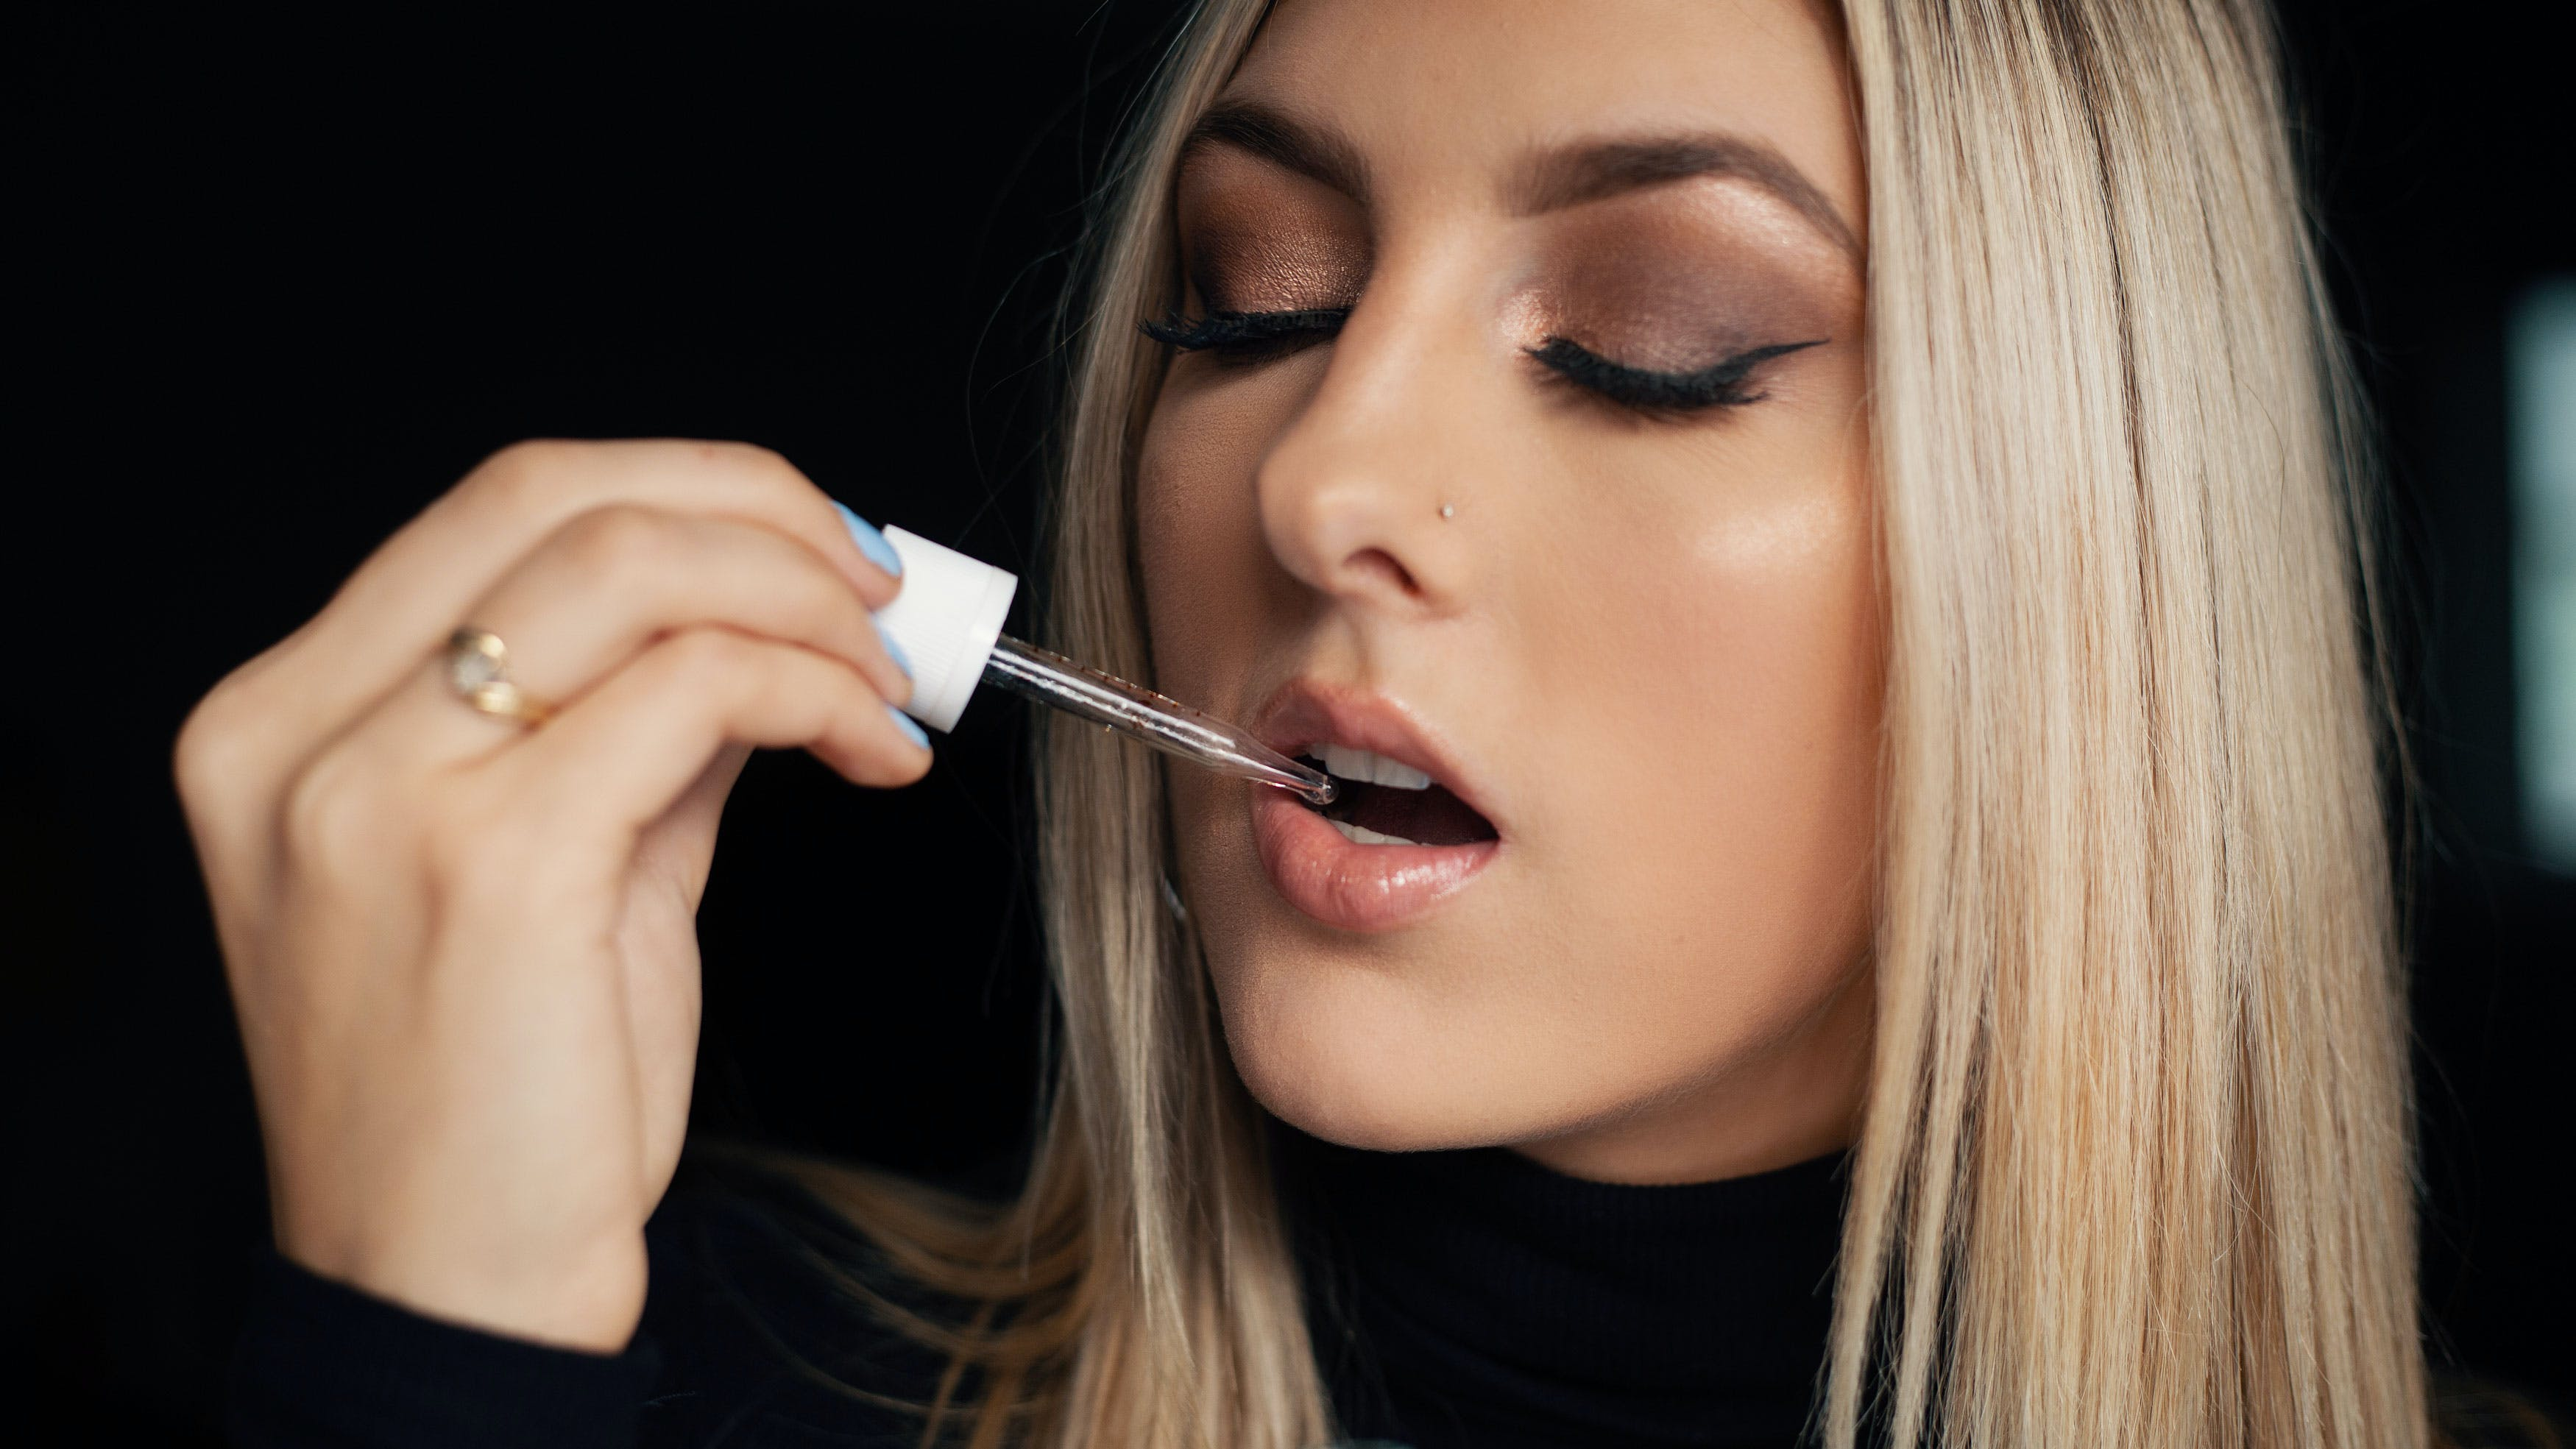 A woman takes a dropper of liquid CBD after learning about CBD drug interactions